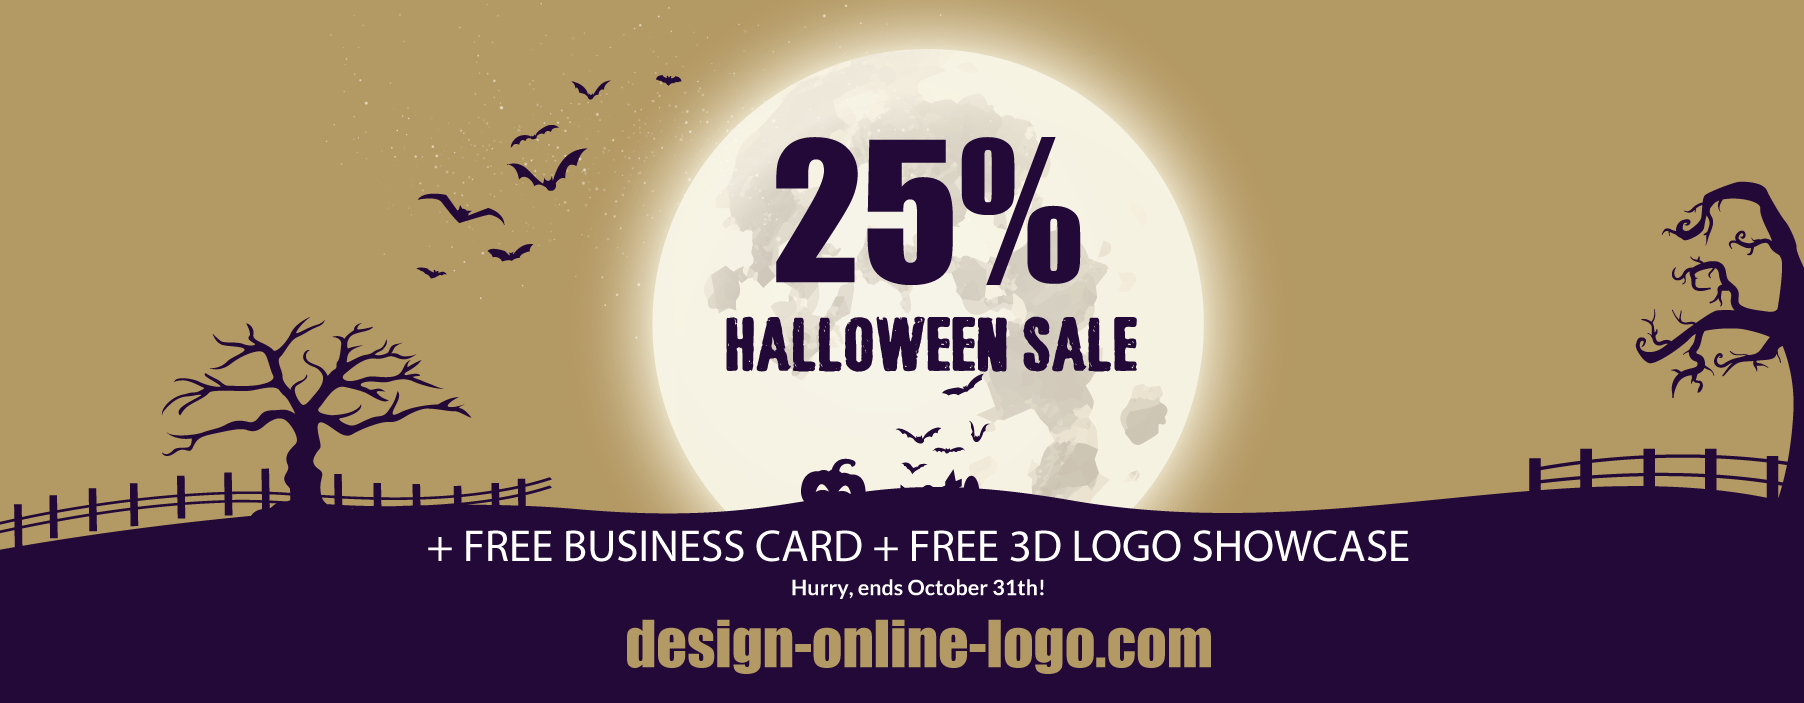 Halloween sale logo design